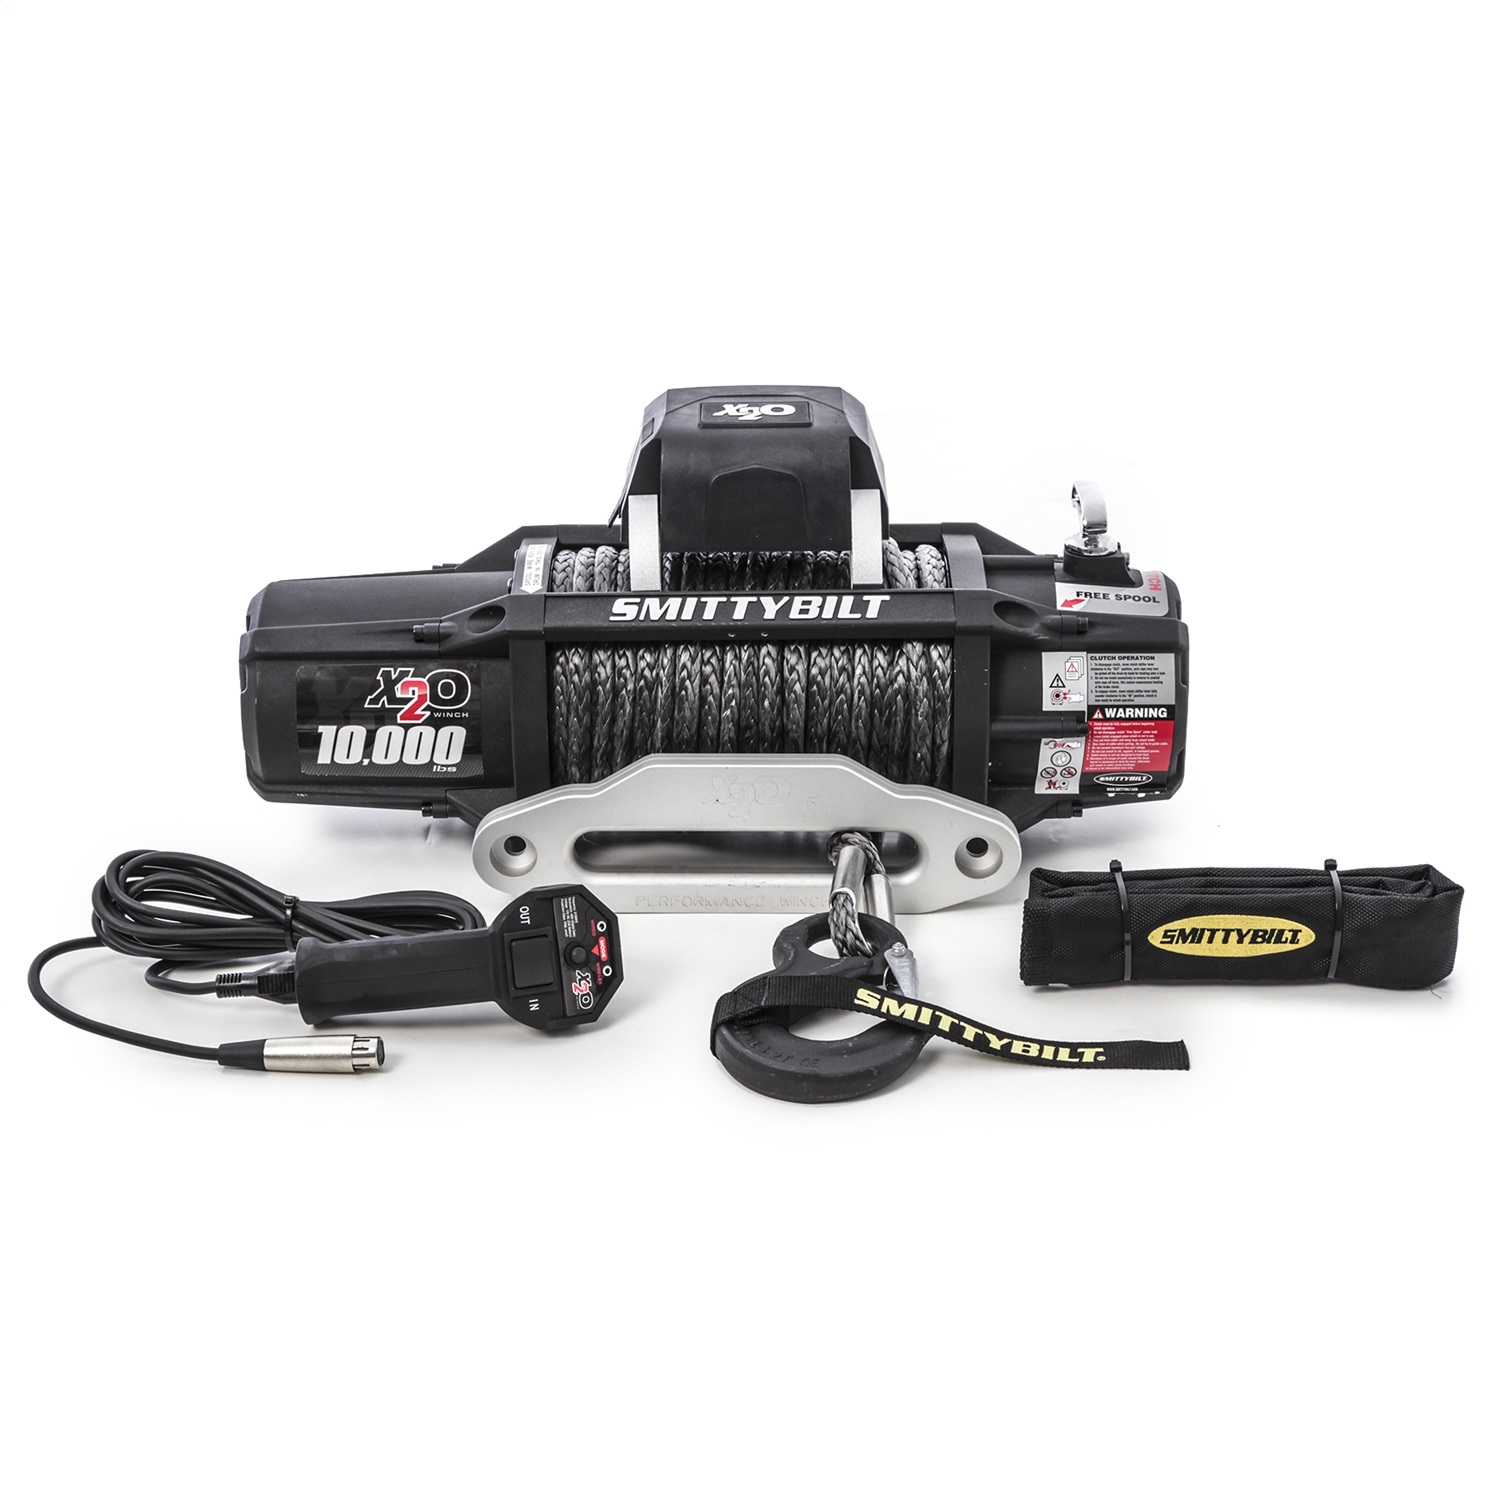 hight resolution of details about smittybilt winch 98510 x2o 10k gen2 wireless remote synthetic rope 10k